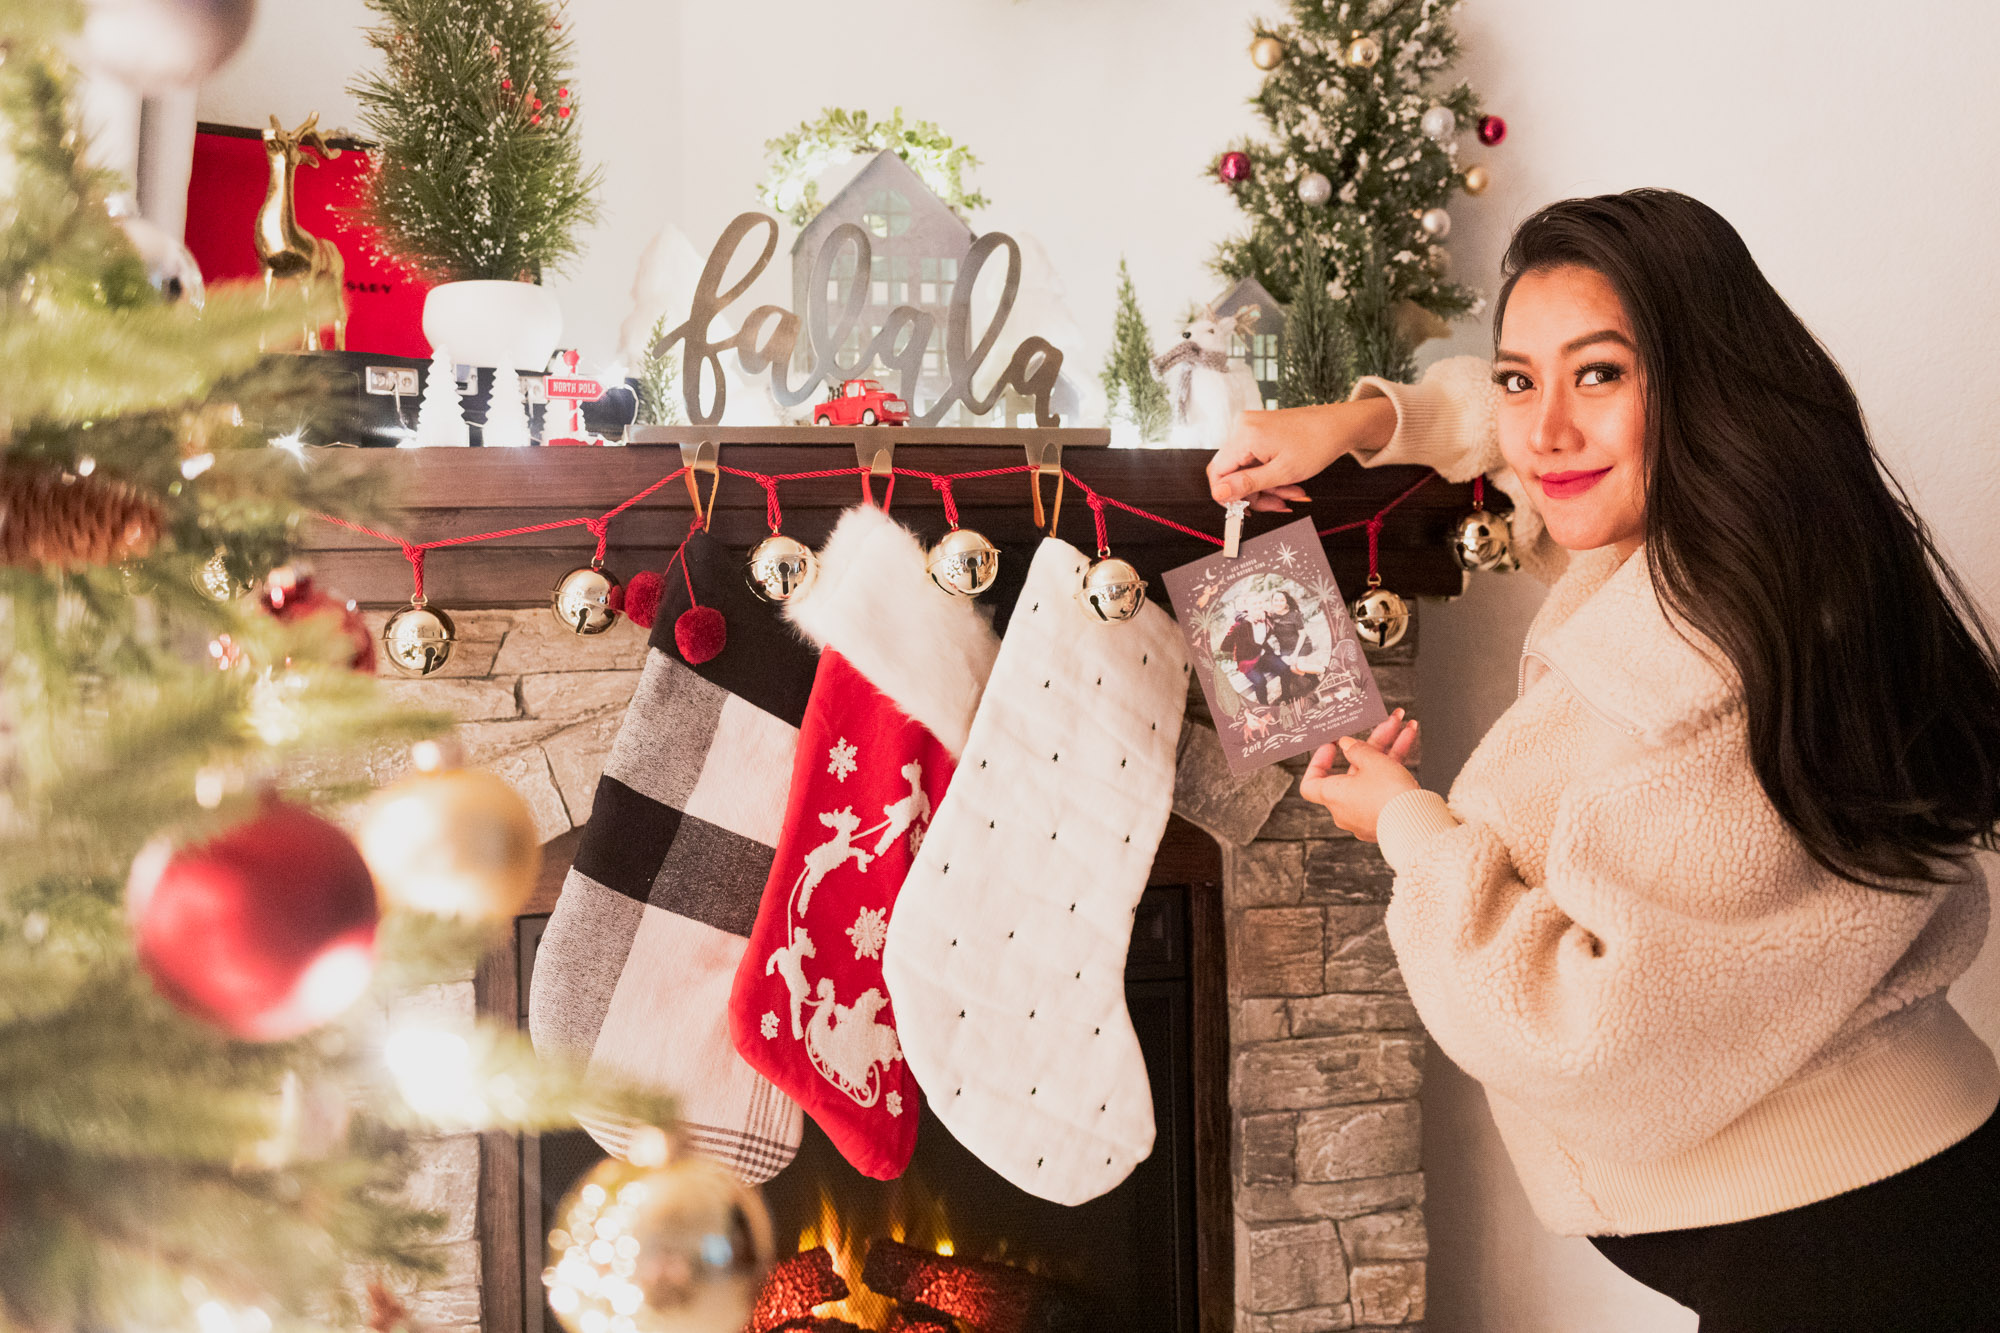 3 Tips to Create A Memorable Personalized Holiday Card with Ease-Allaboutgoodvibes.com_molly Larsen-Beauty Style Blogger-IG @thevibescloset-Minted.com-Christmas card idea